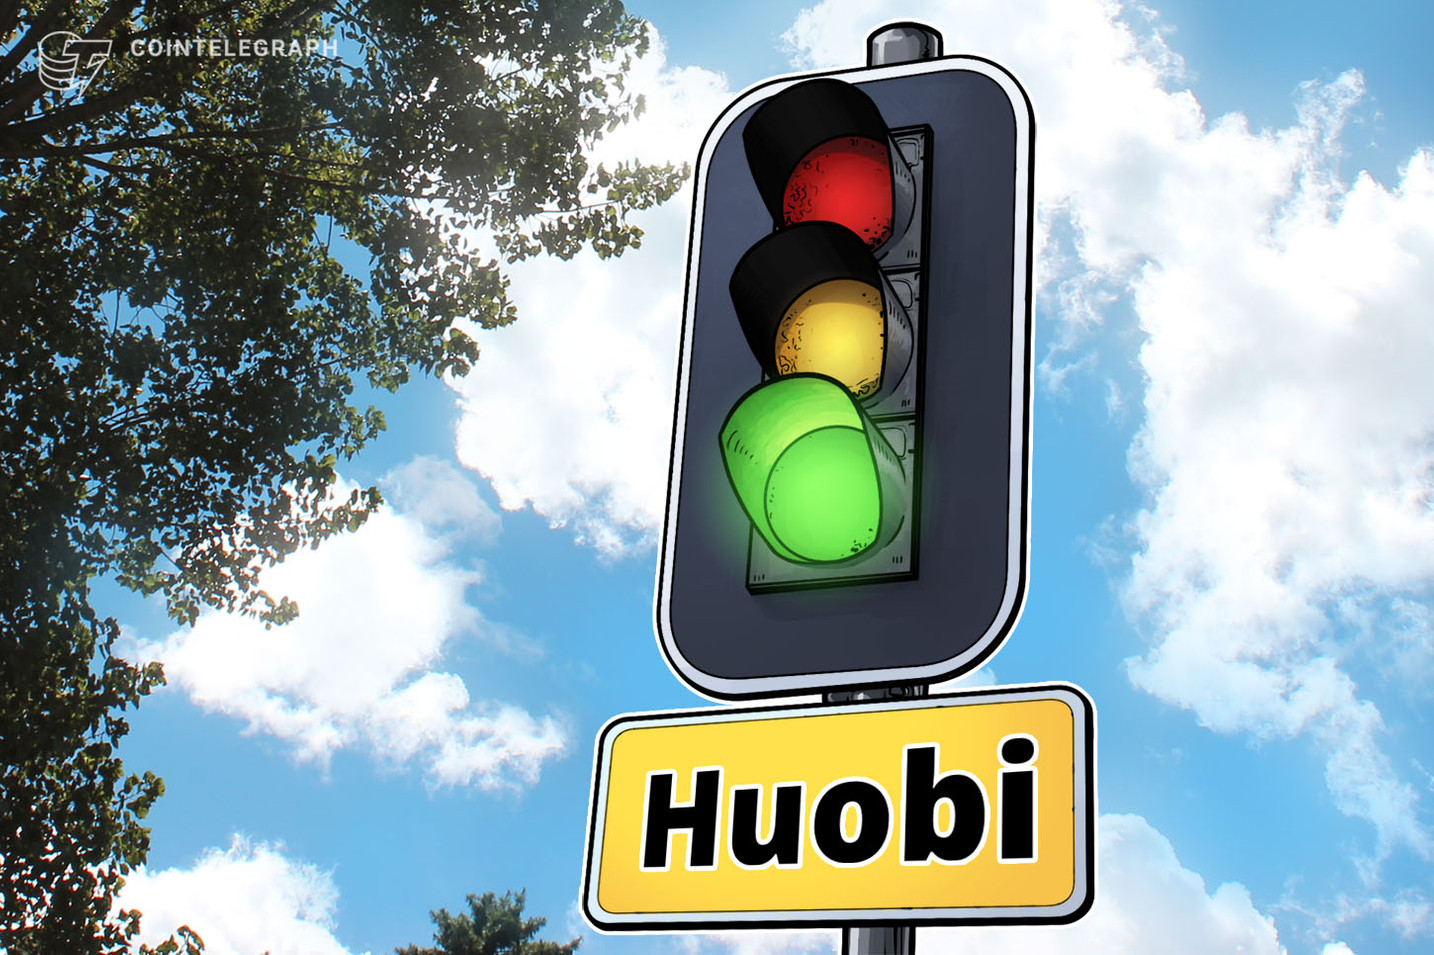 Huobi Launches OTC Desk for Institutional Investors